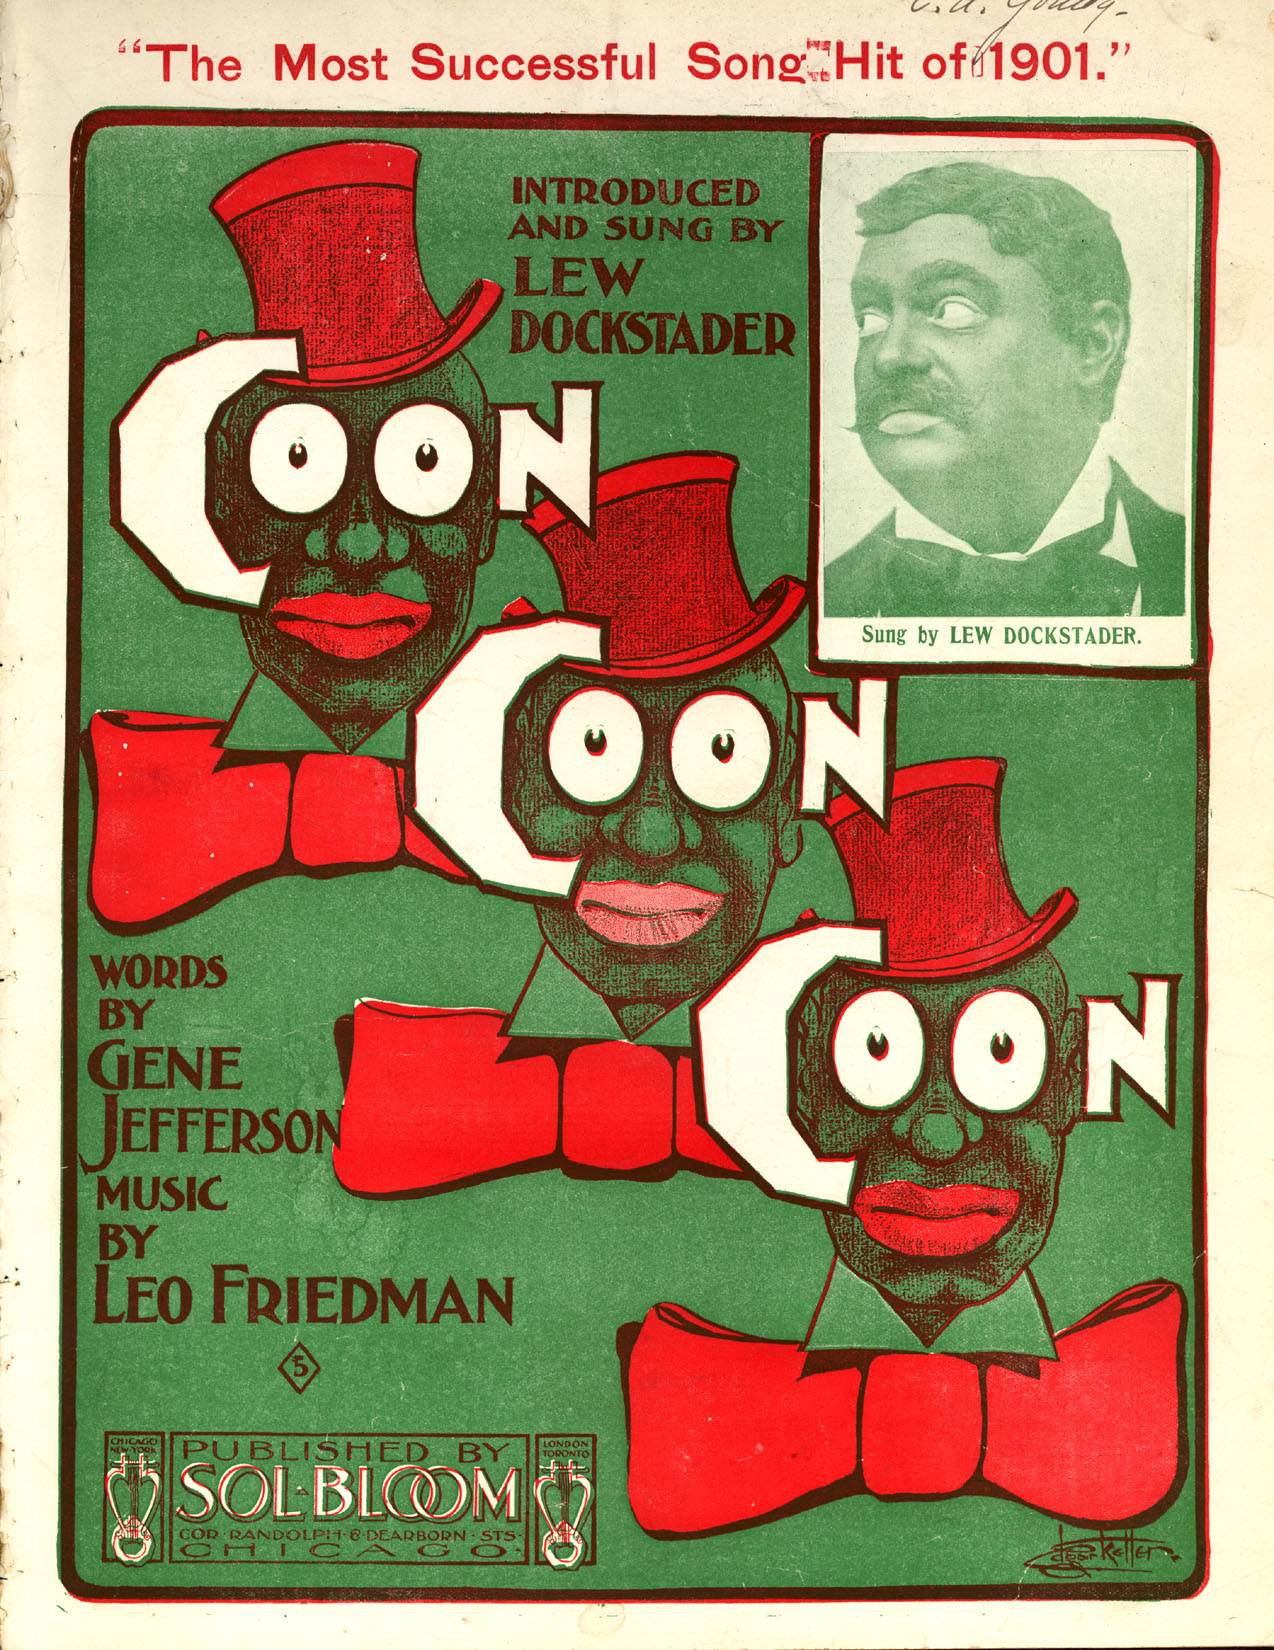 Coon song - Wikipedia